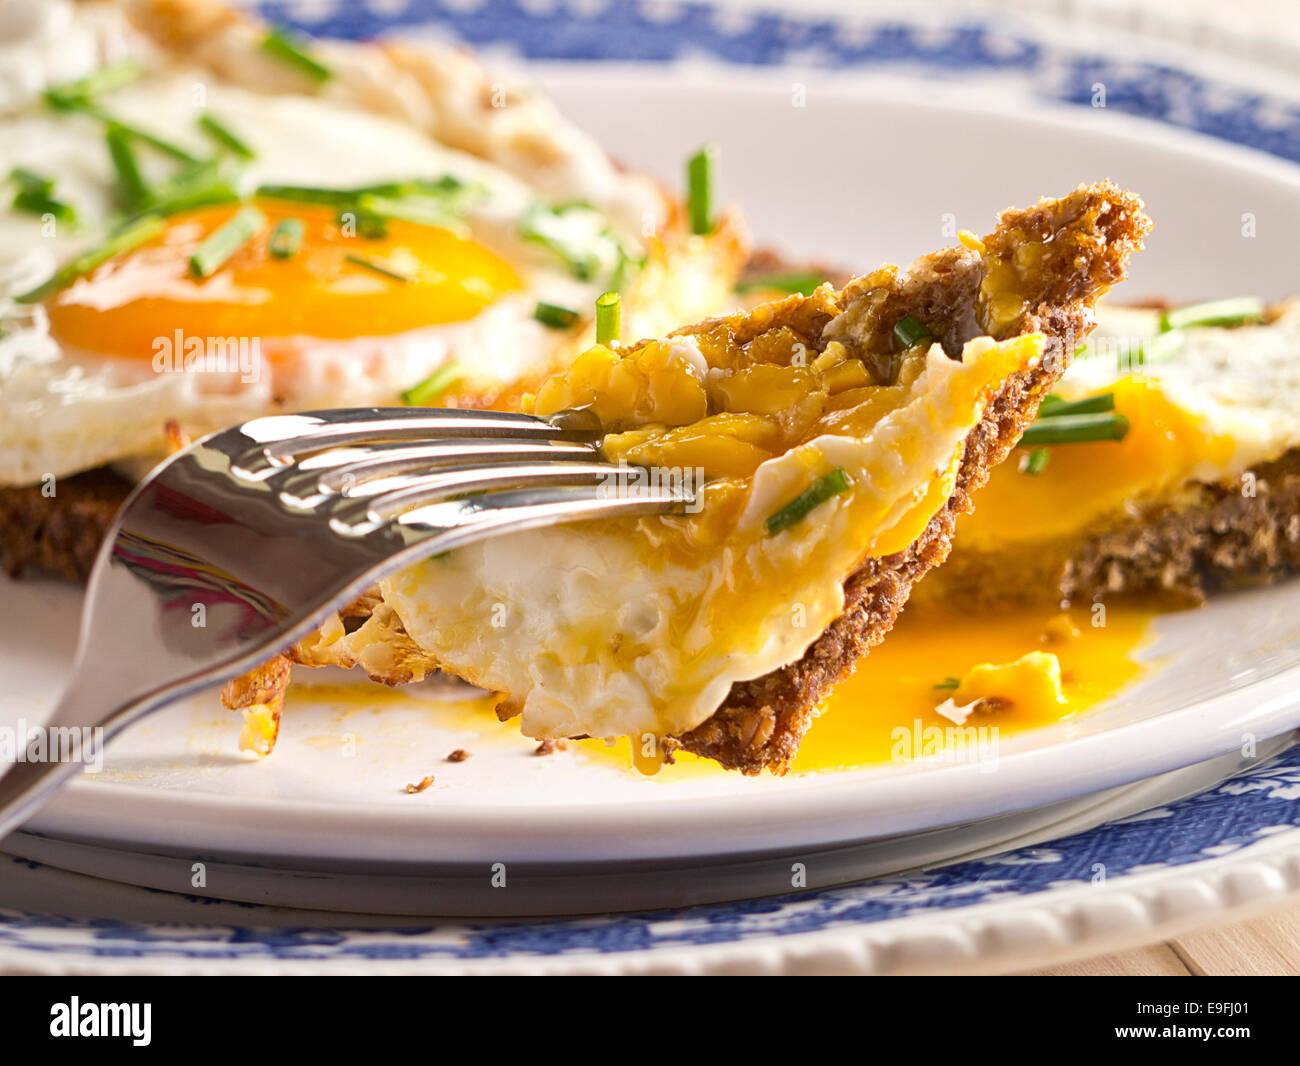 Fried egg on a slice of bread. Stock Photo